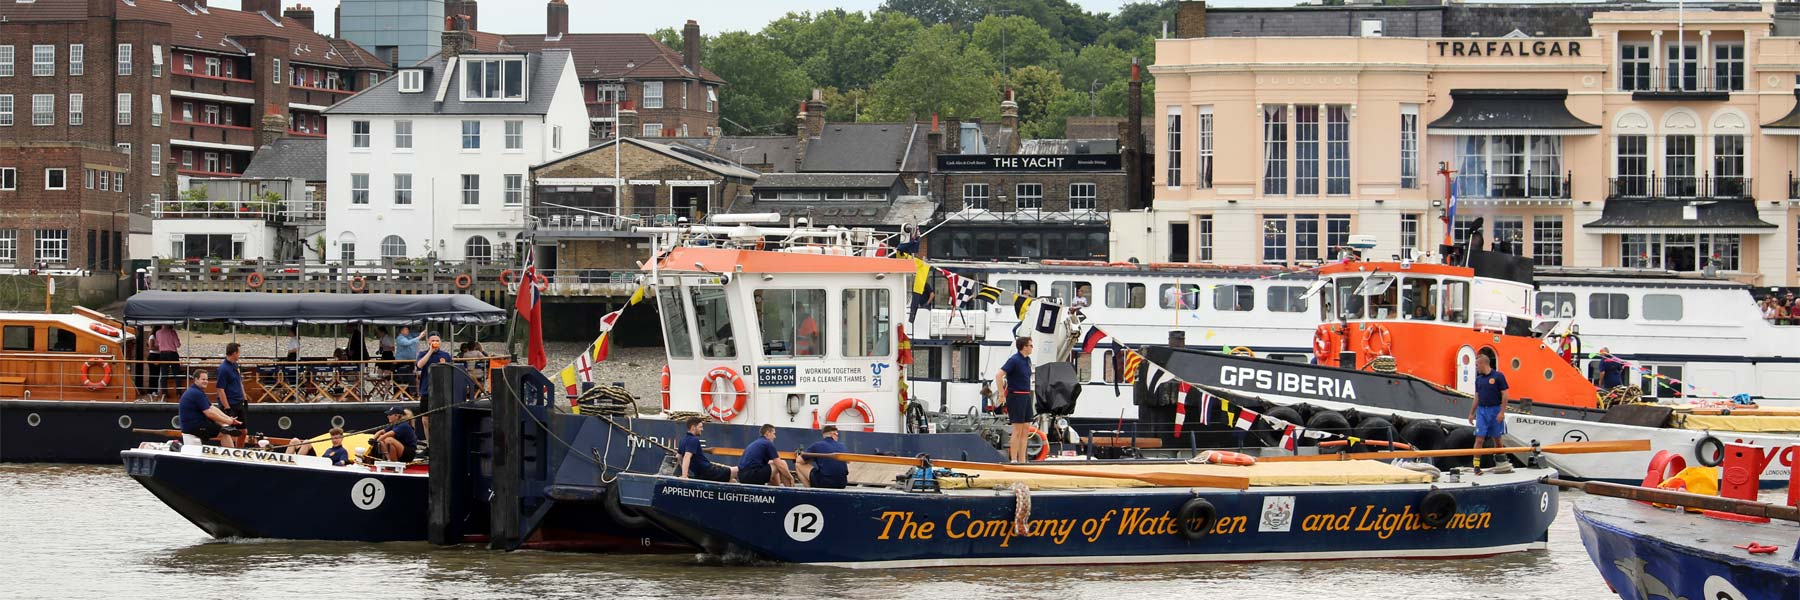 Thames Barge Driving Trust Videos